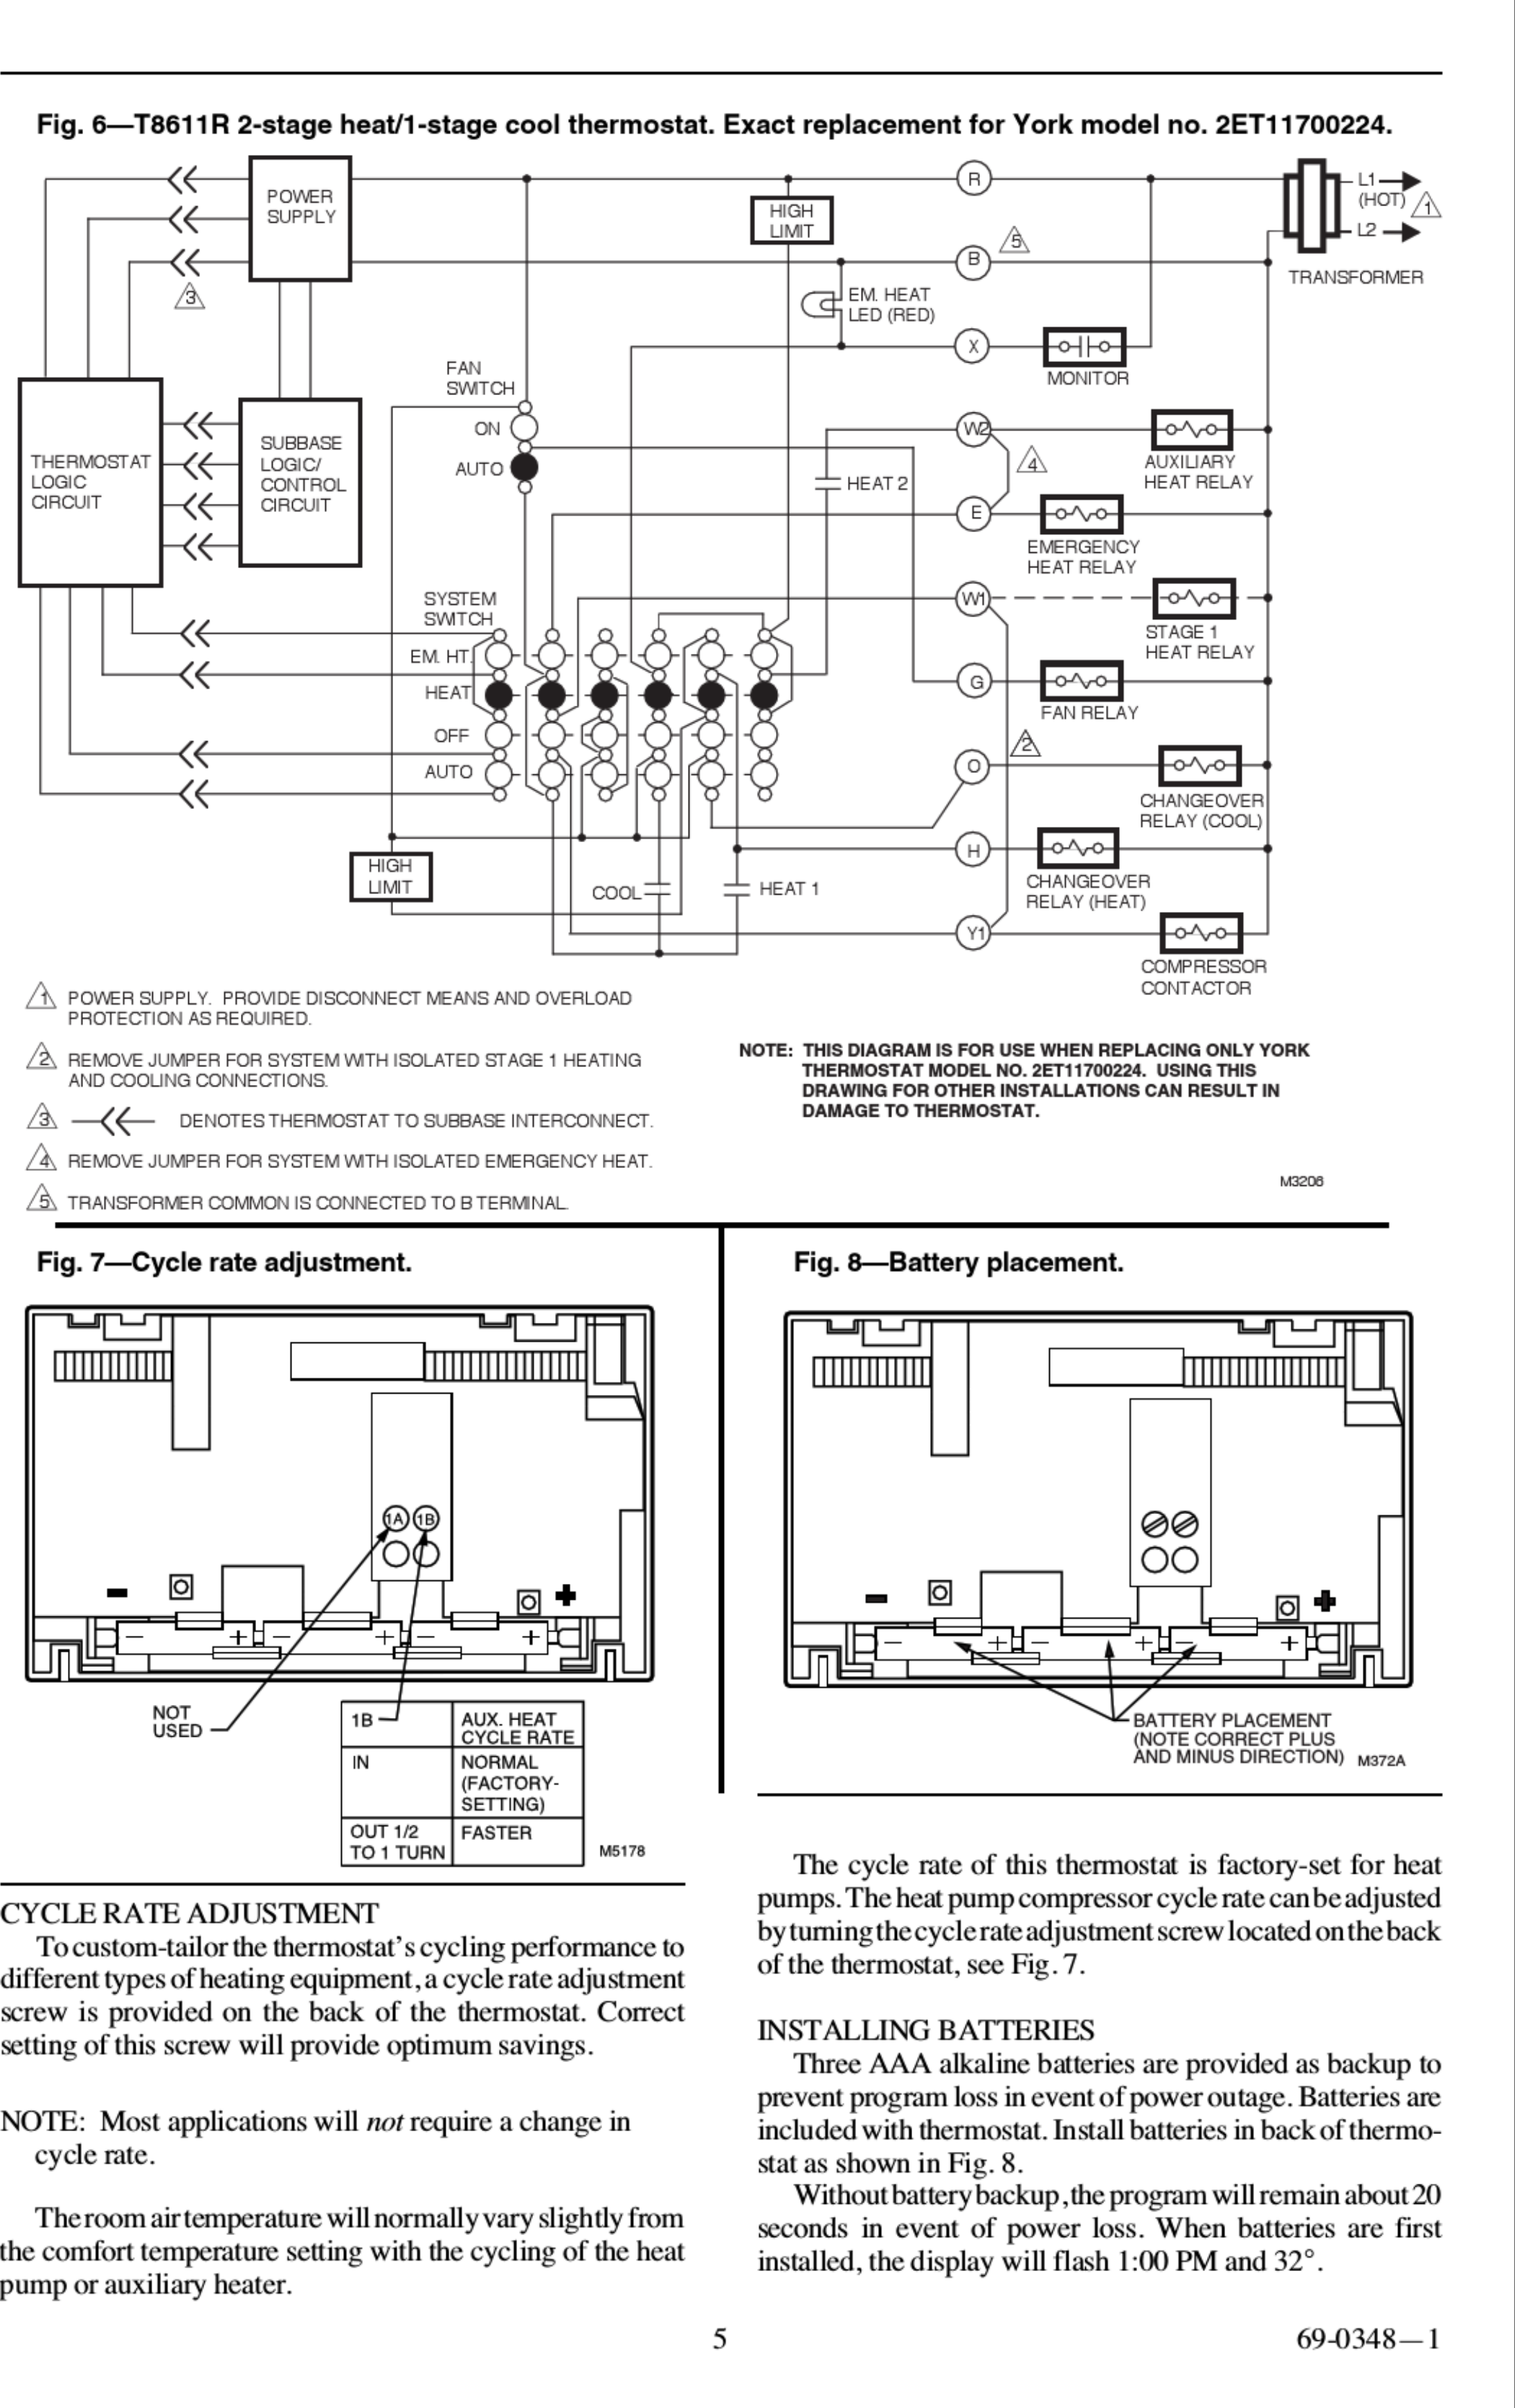 Honeywell St9120c Wiring Diagram Wiring Diagrams furthermore Honeywell Th8320r1003 Wiring Diagram likewise Honeywell Chronotherm Iii Wiring Diagram also 2wire Programmable Thermostat Wiring Diagram additionally  on honeywell thermostat ct31a wiring diagram